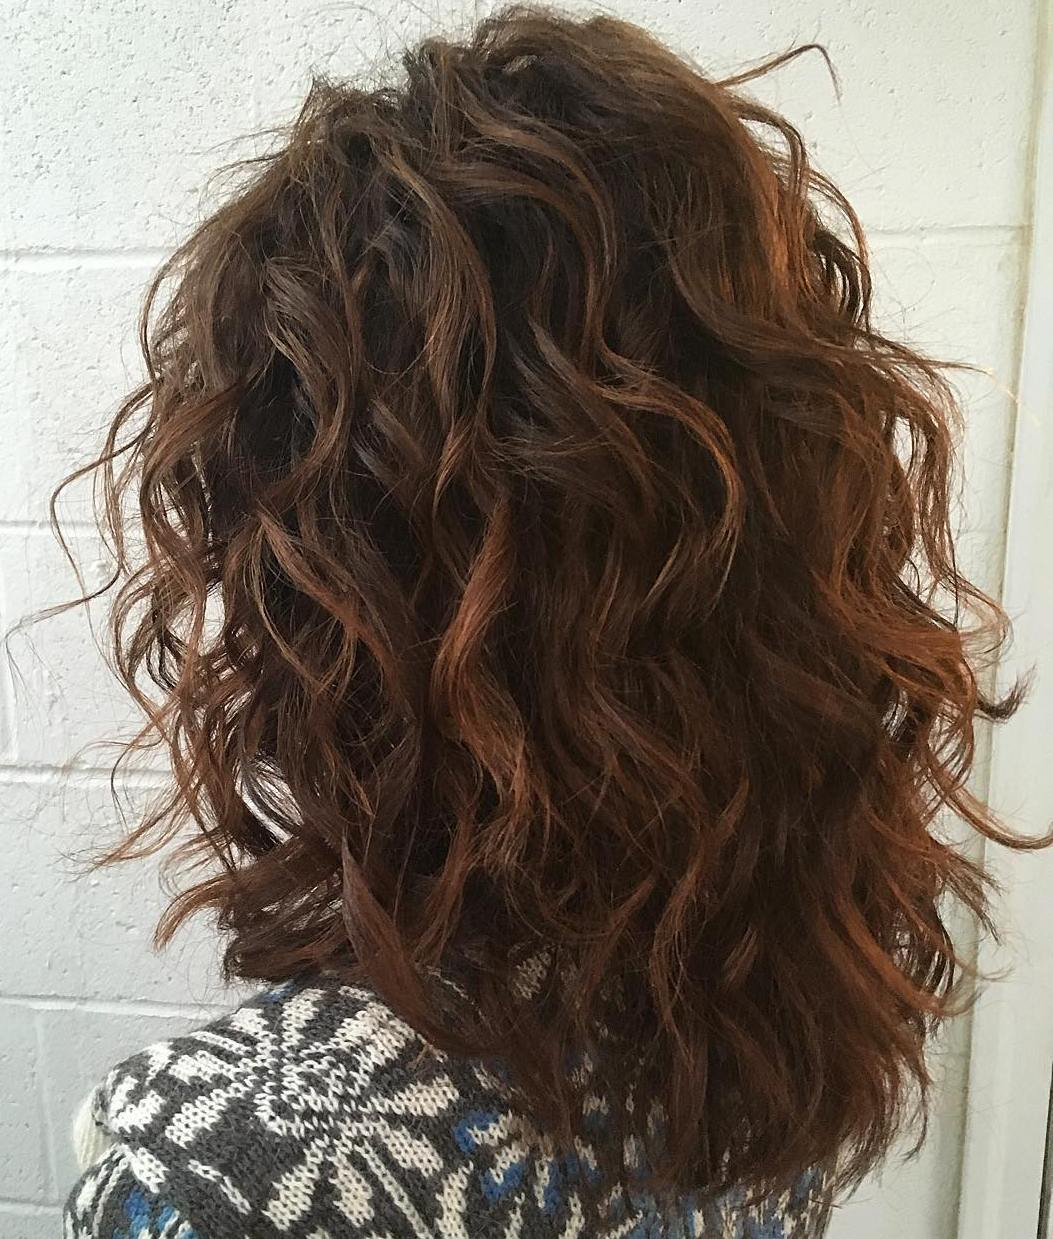 Pictures of Curly Hair | Natural Hair Bangs | Layered Curly Hair